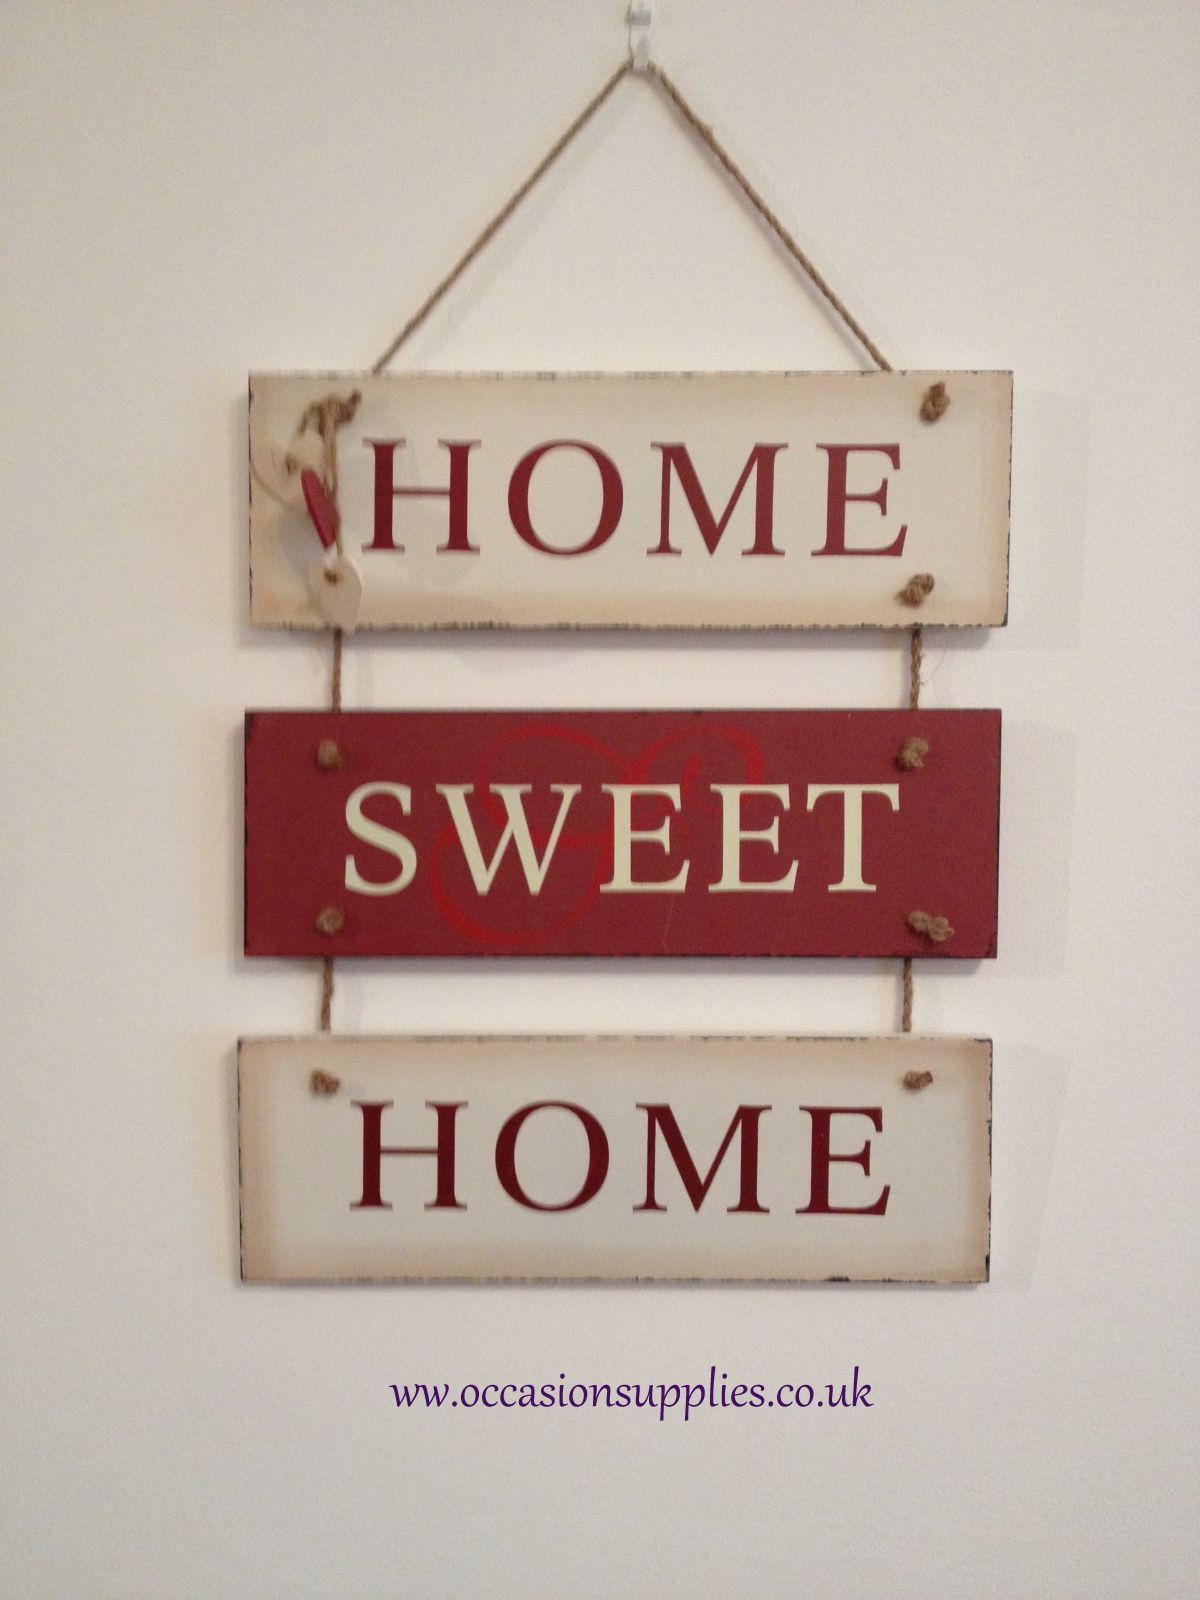 shabby chic style home sweet home hanging plaque   home sweet home, Schlafzimmer entwurf